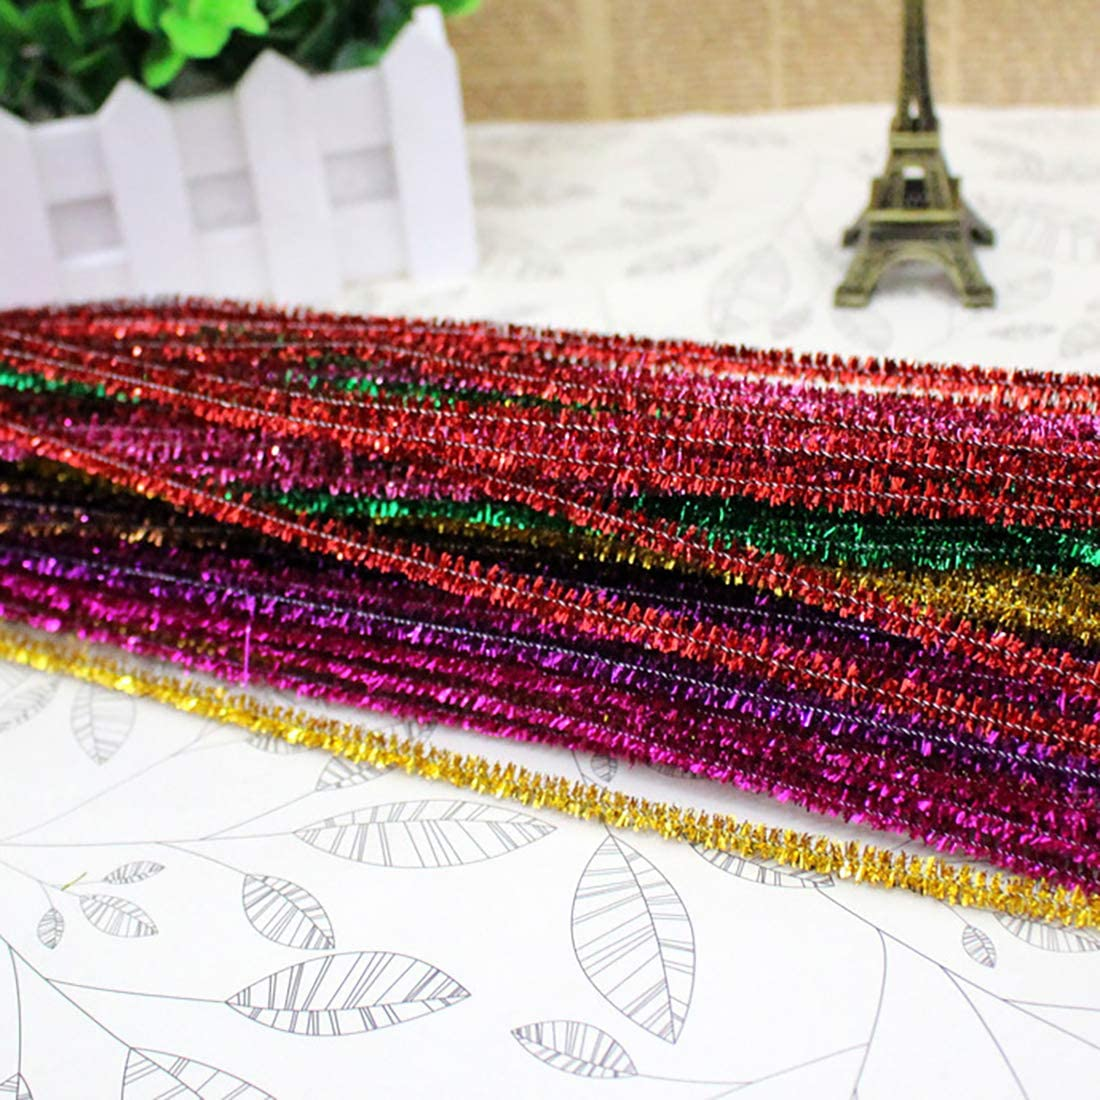 Pipe Cleaners 6mm x12inches 400 Pcs Chenille Stems in 10 Colors for DIY Arts and Craft Project Decoration,